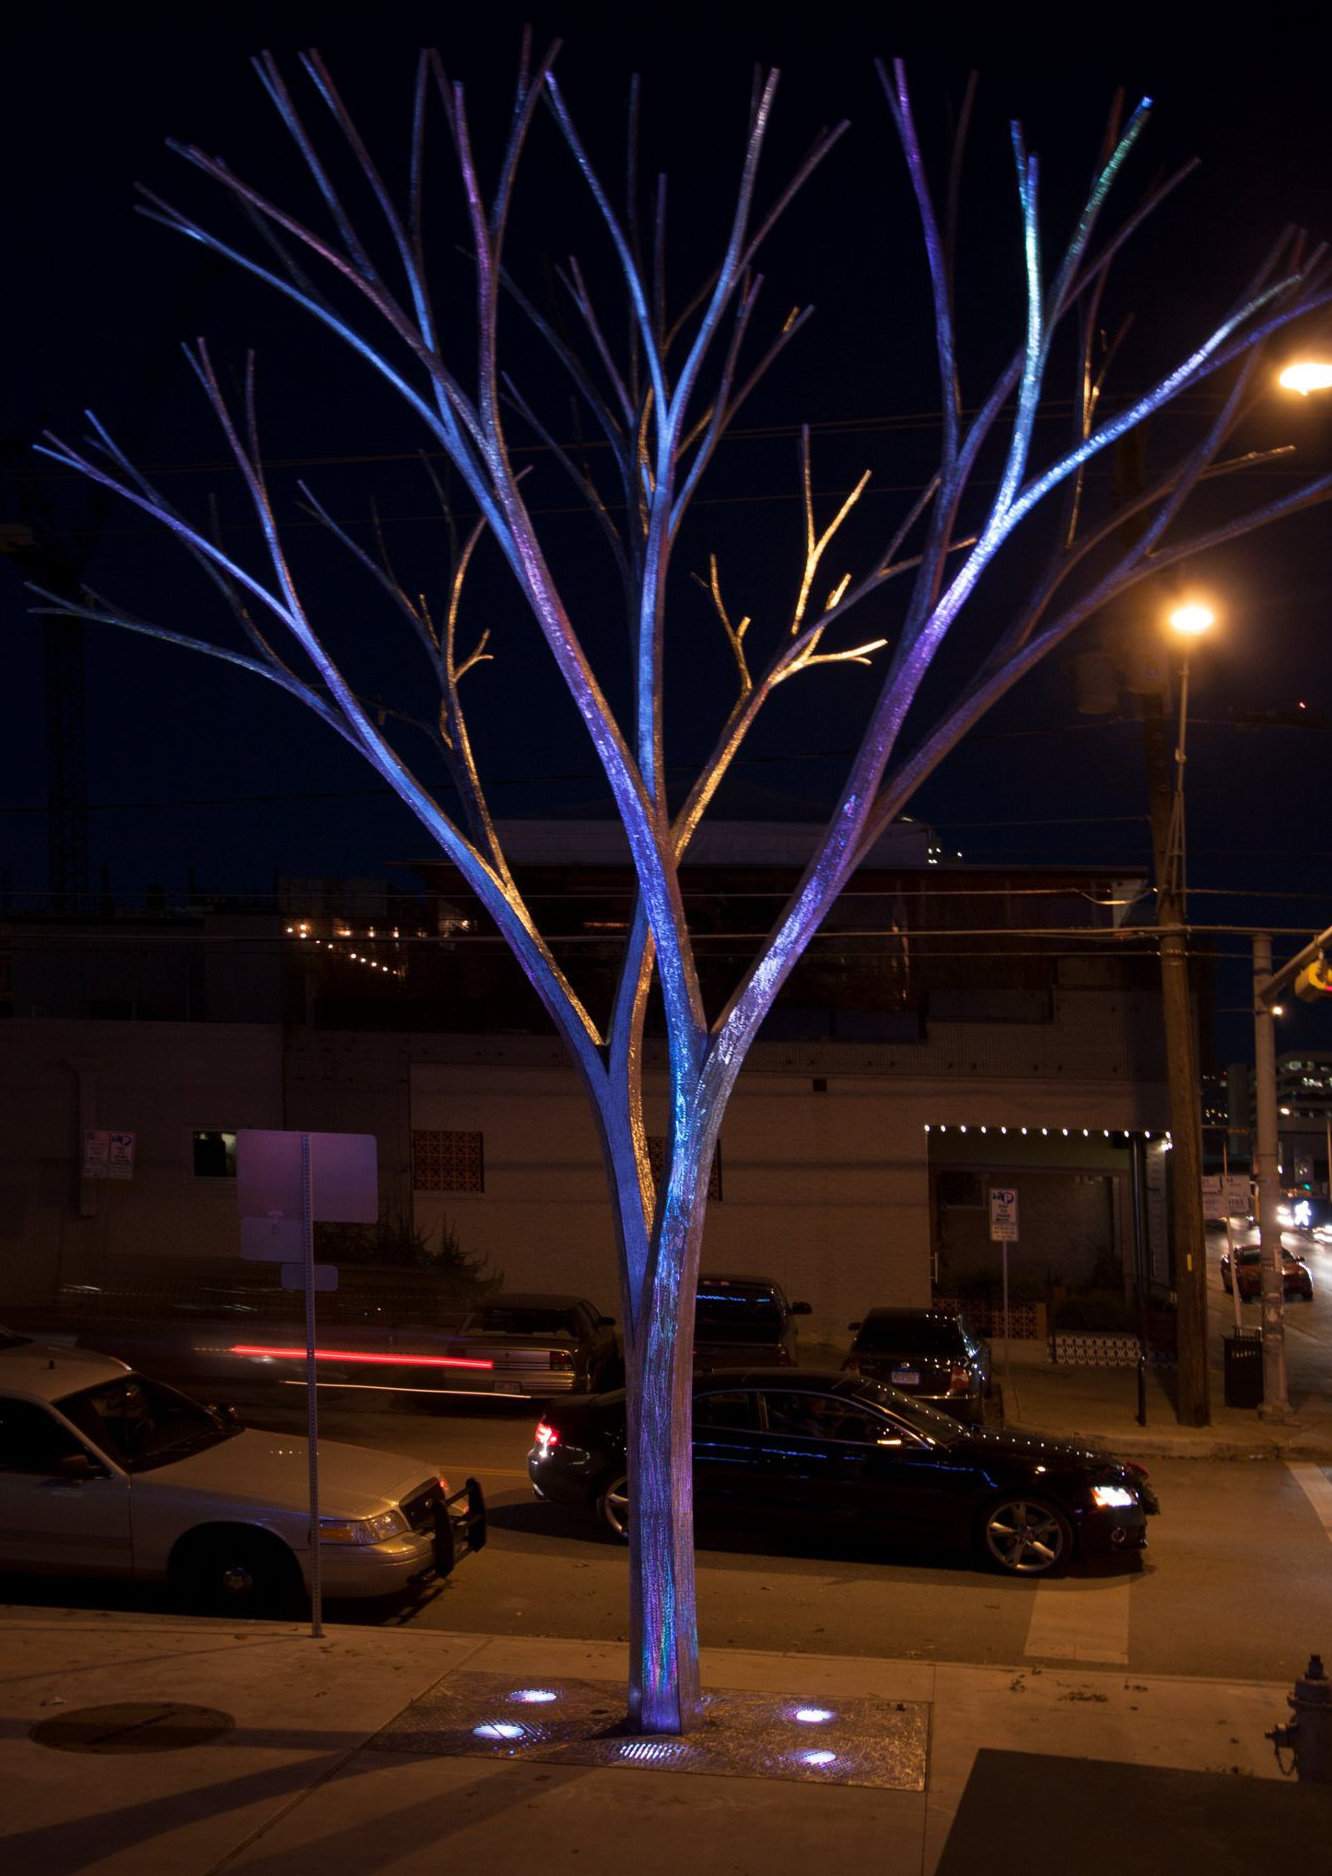 Austin tree night